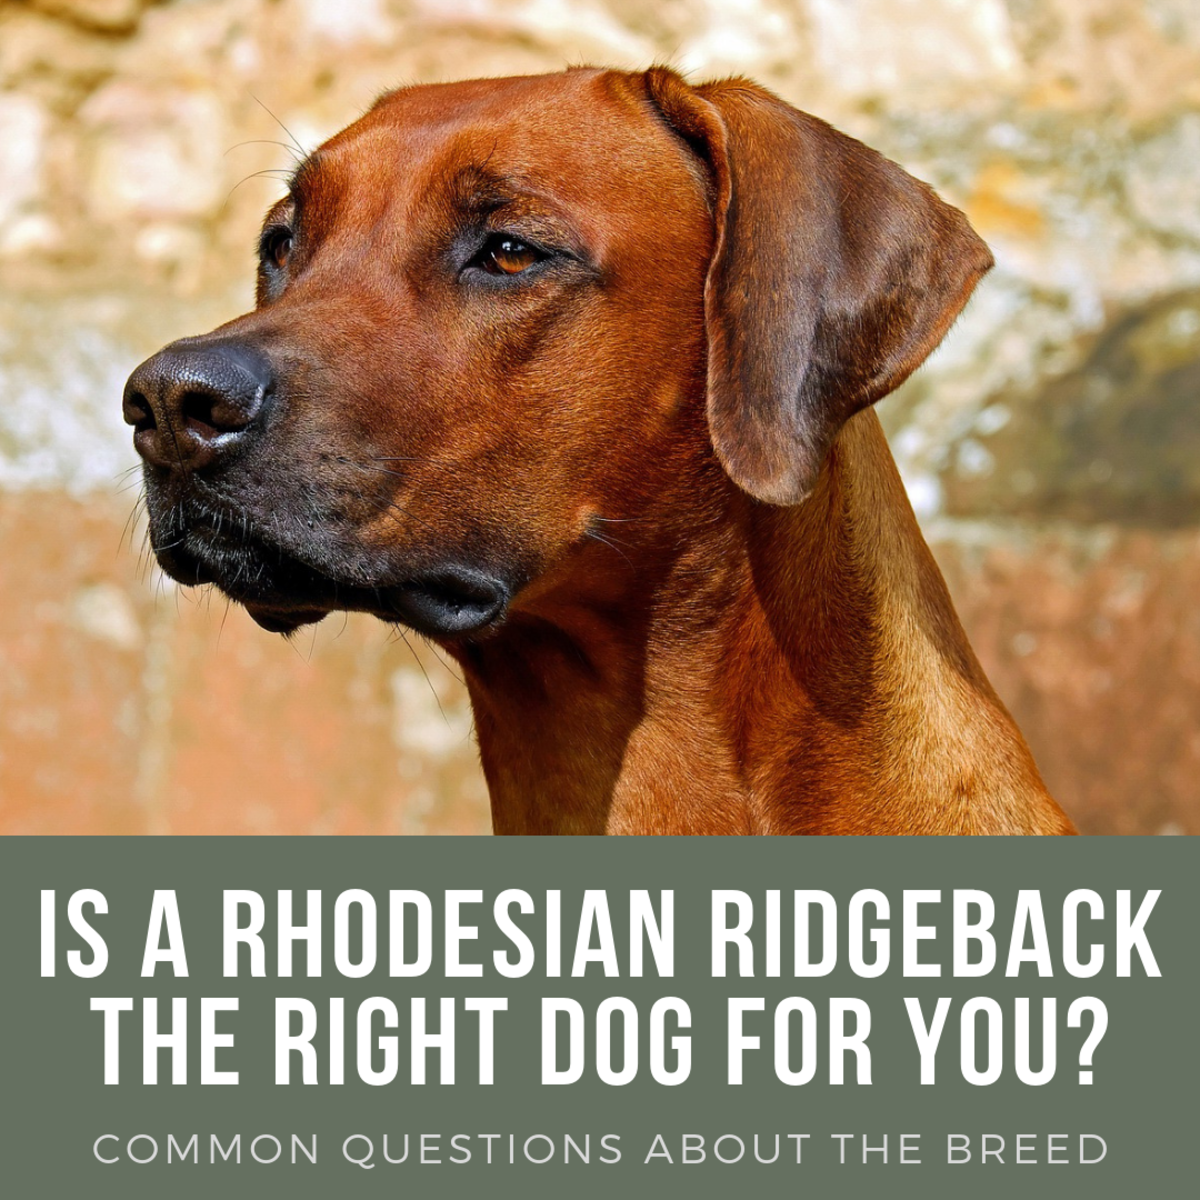 Learn more about this breed's temperament, care requirements, and preferred training methods.